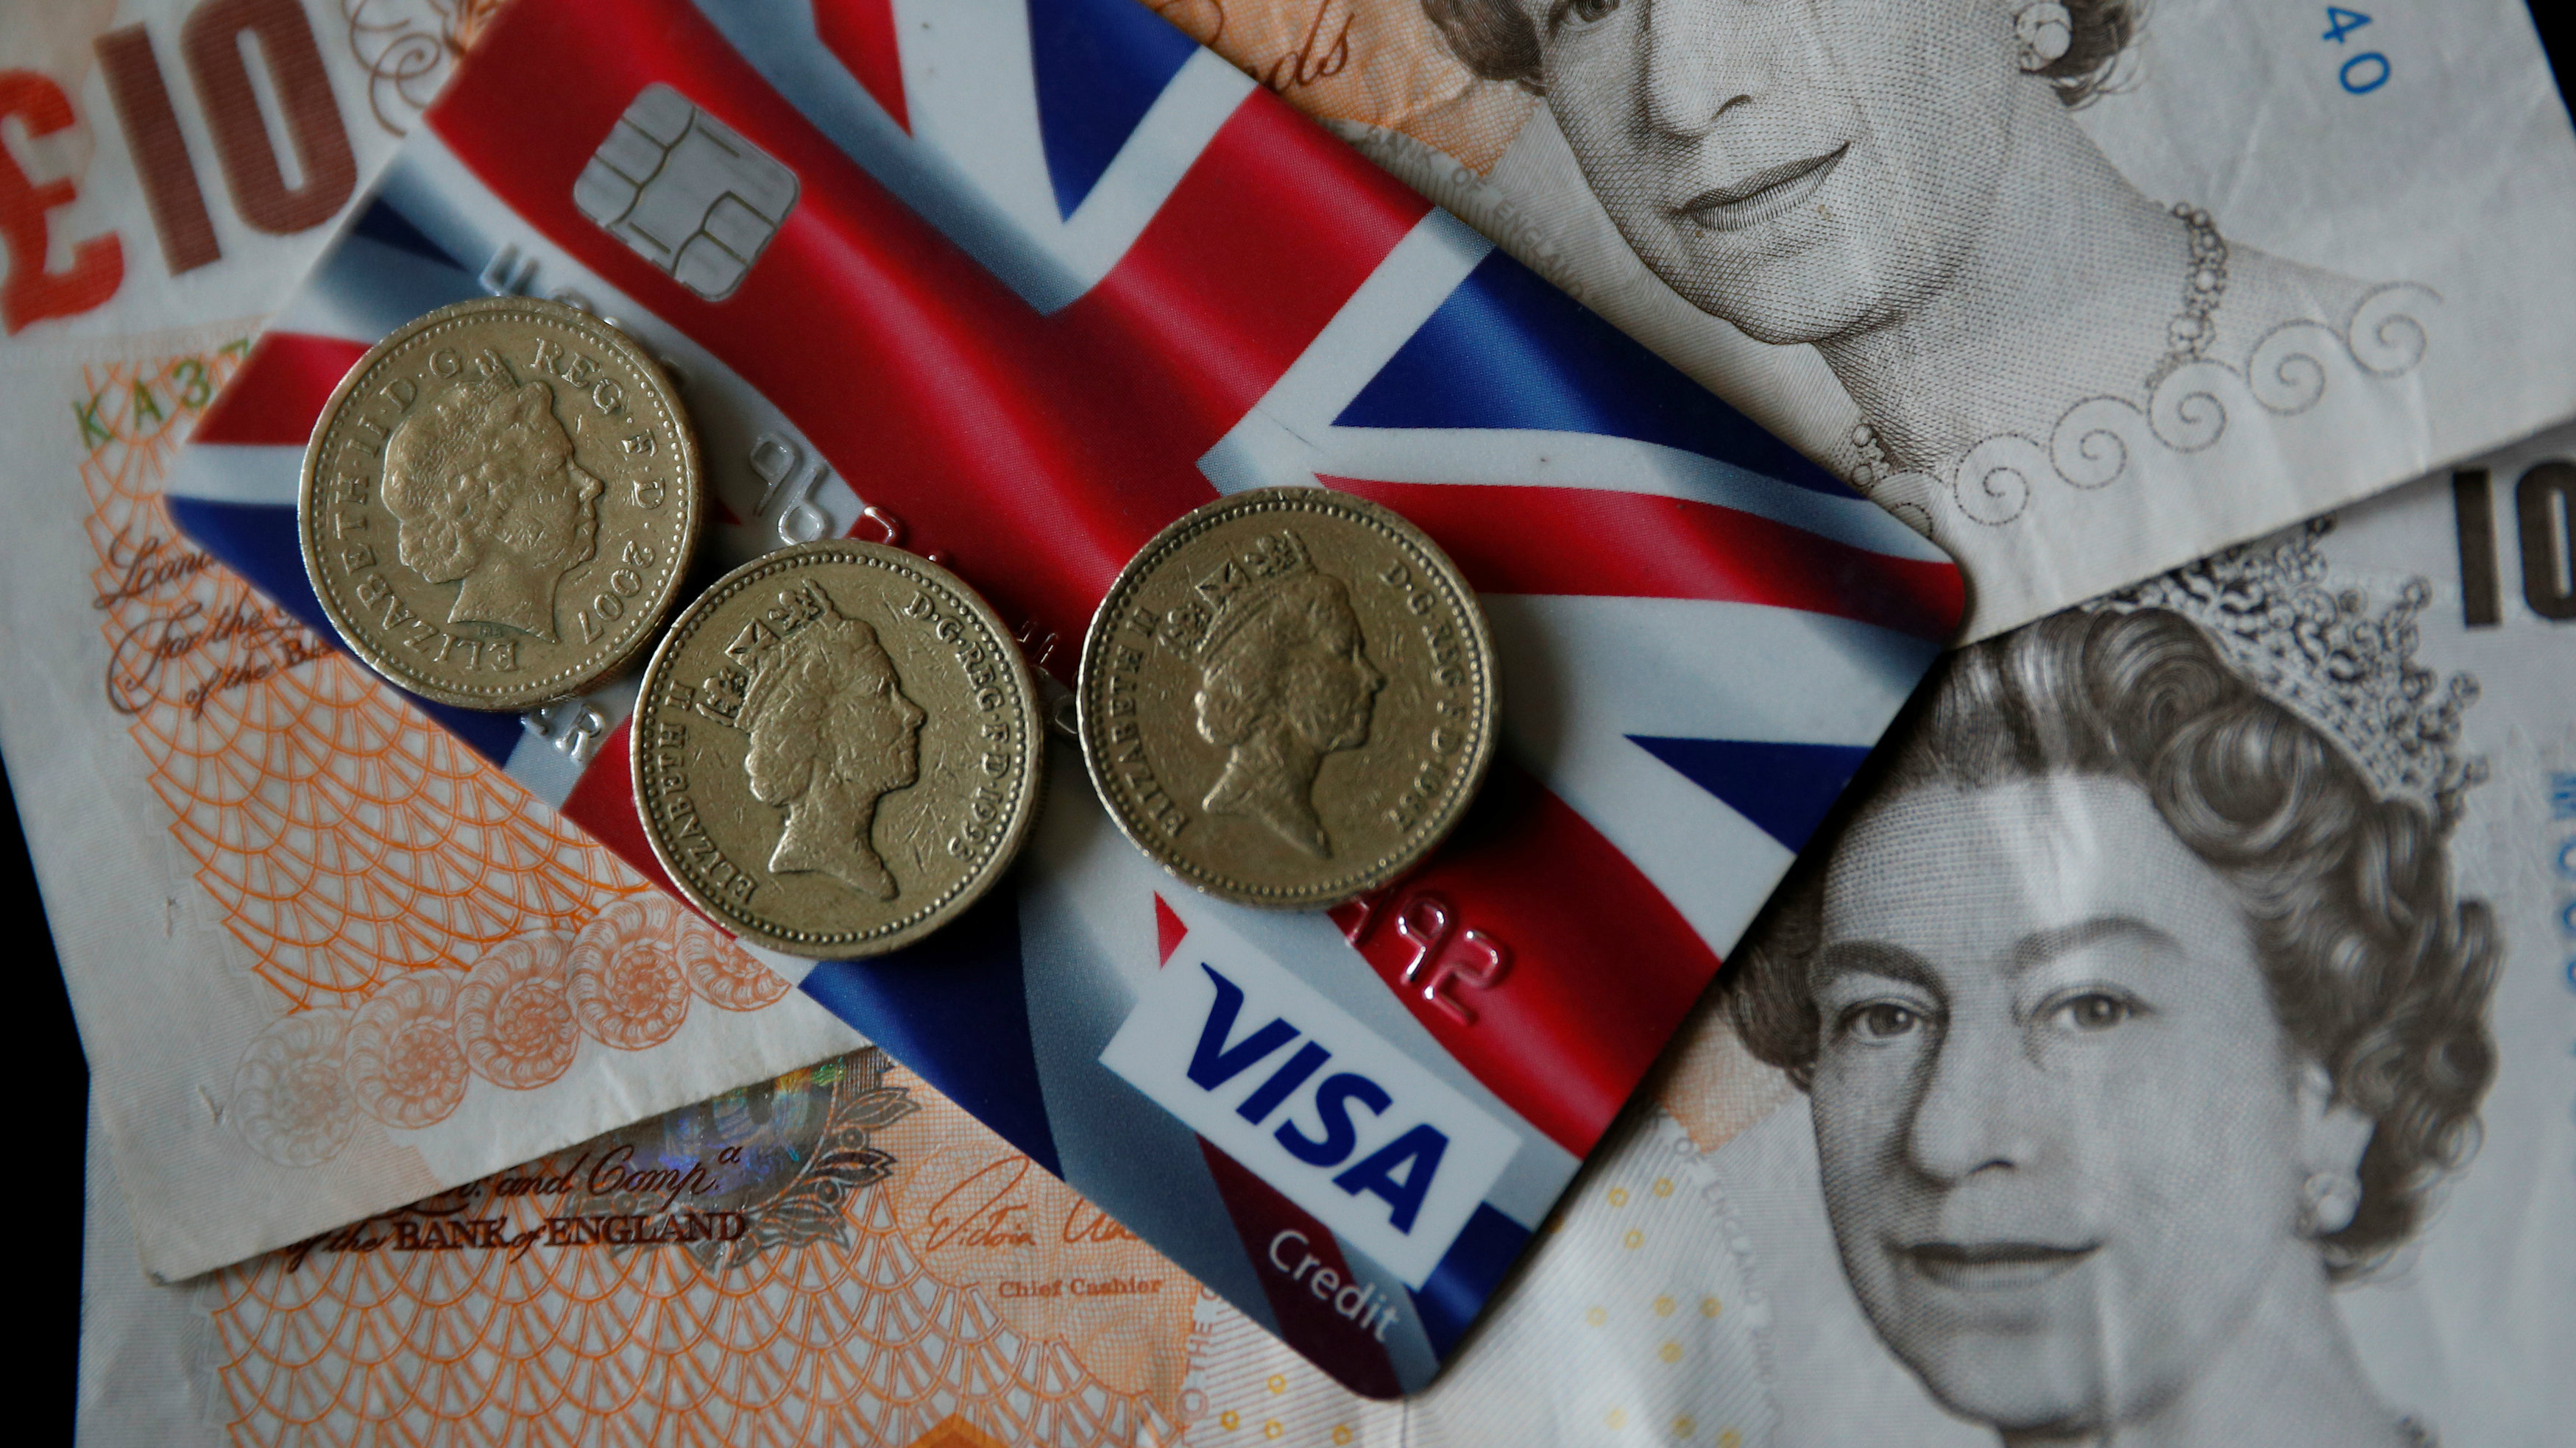 A Union Jack themed Visa credit card is seen amongst British currency in this photo illustration taken in Manchester, Britain March 13, 2017. Picture taken March 13, 2017.